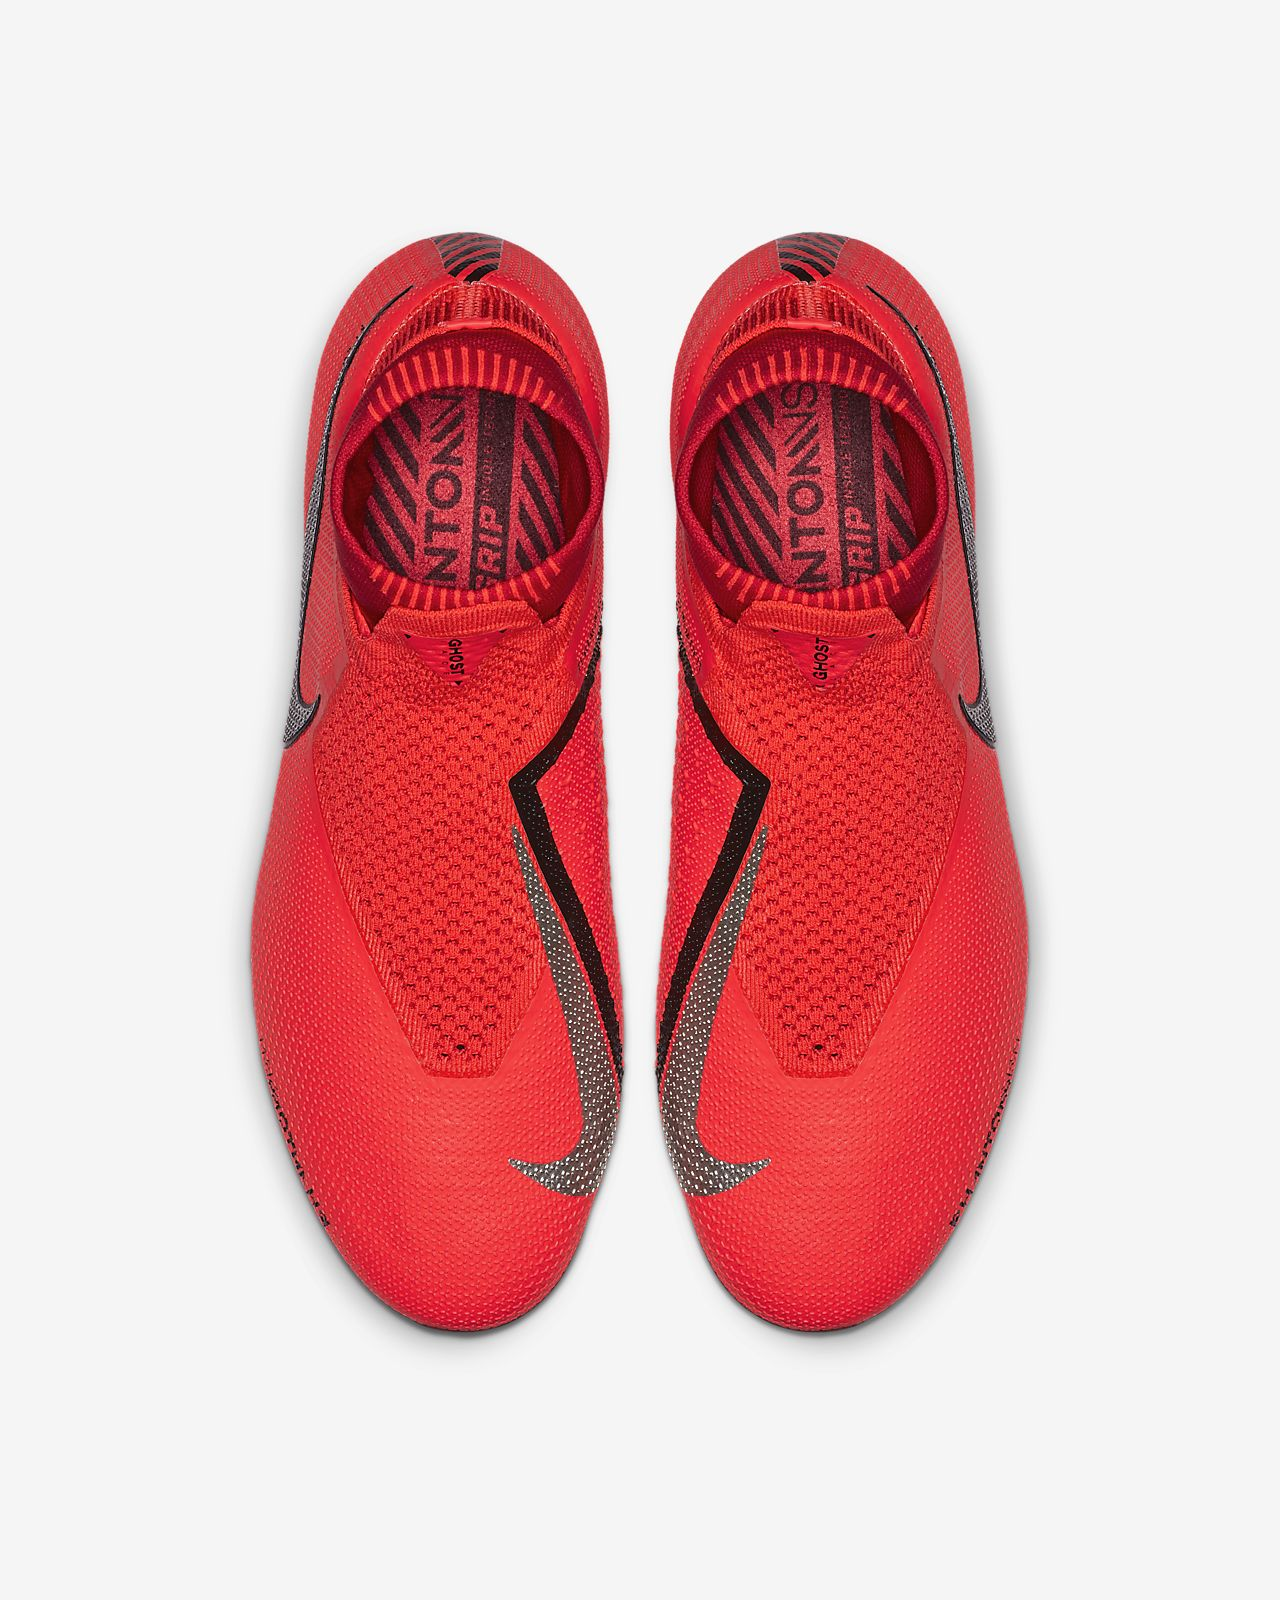 71527a5c6cdd25 ... Nike PhantomVSN Elite Dynamic Fit Game Over FG Firm-Ground Football Boot